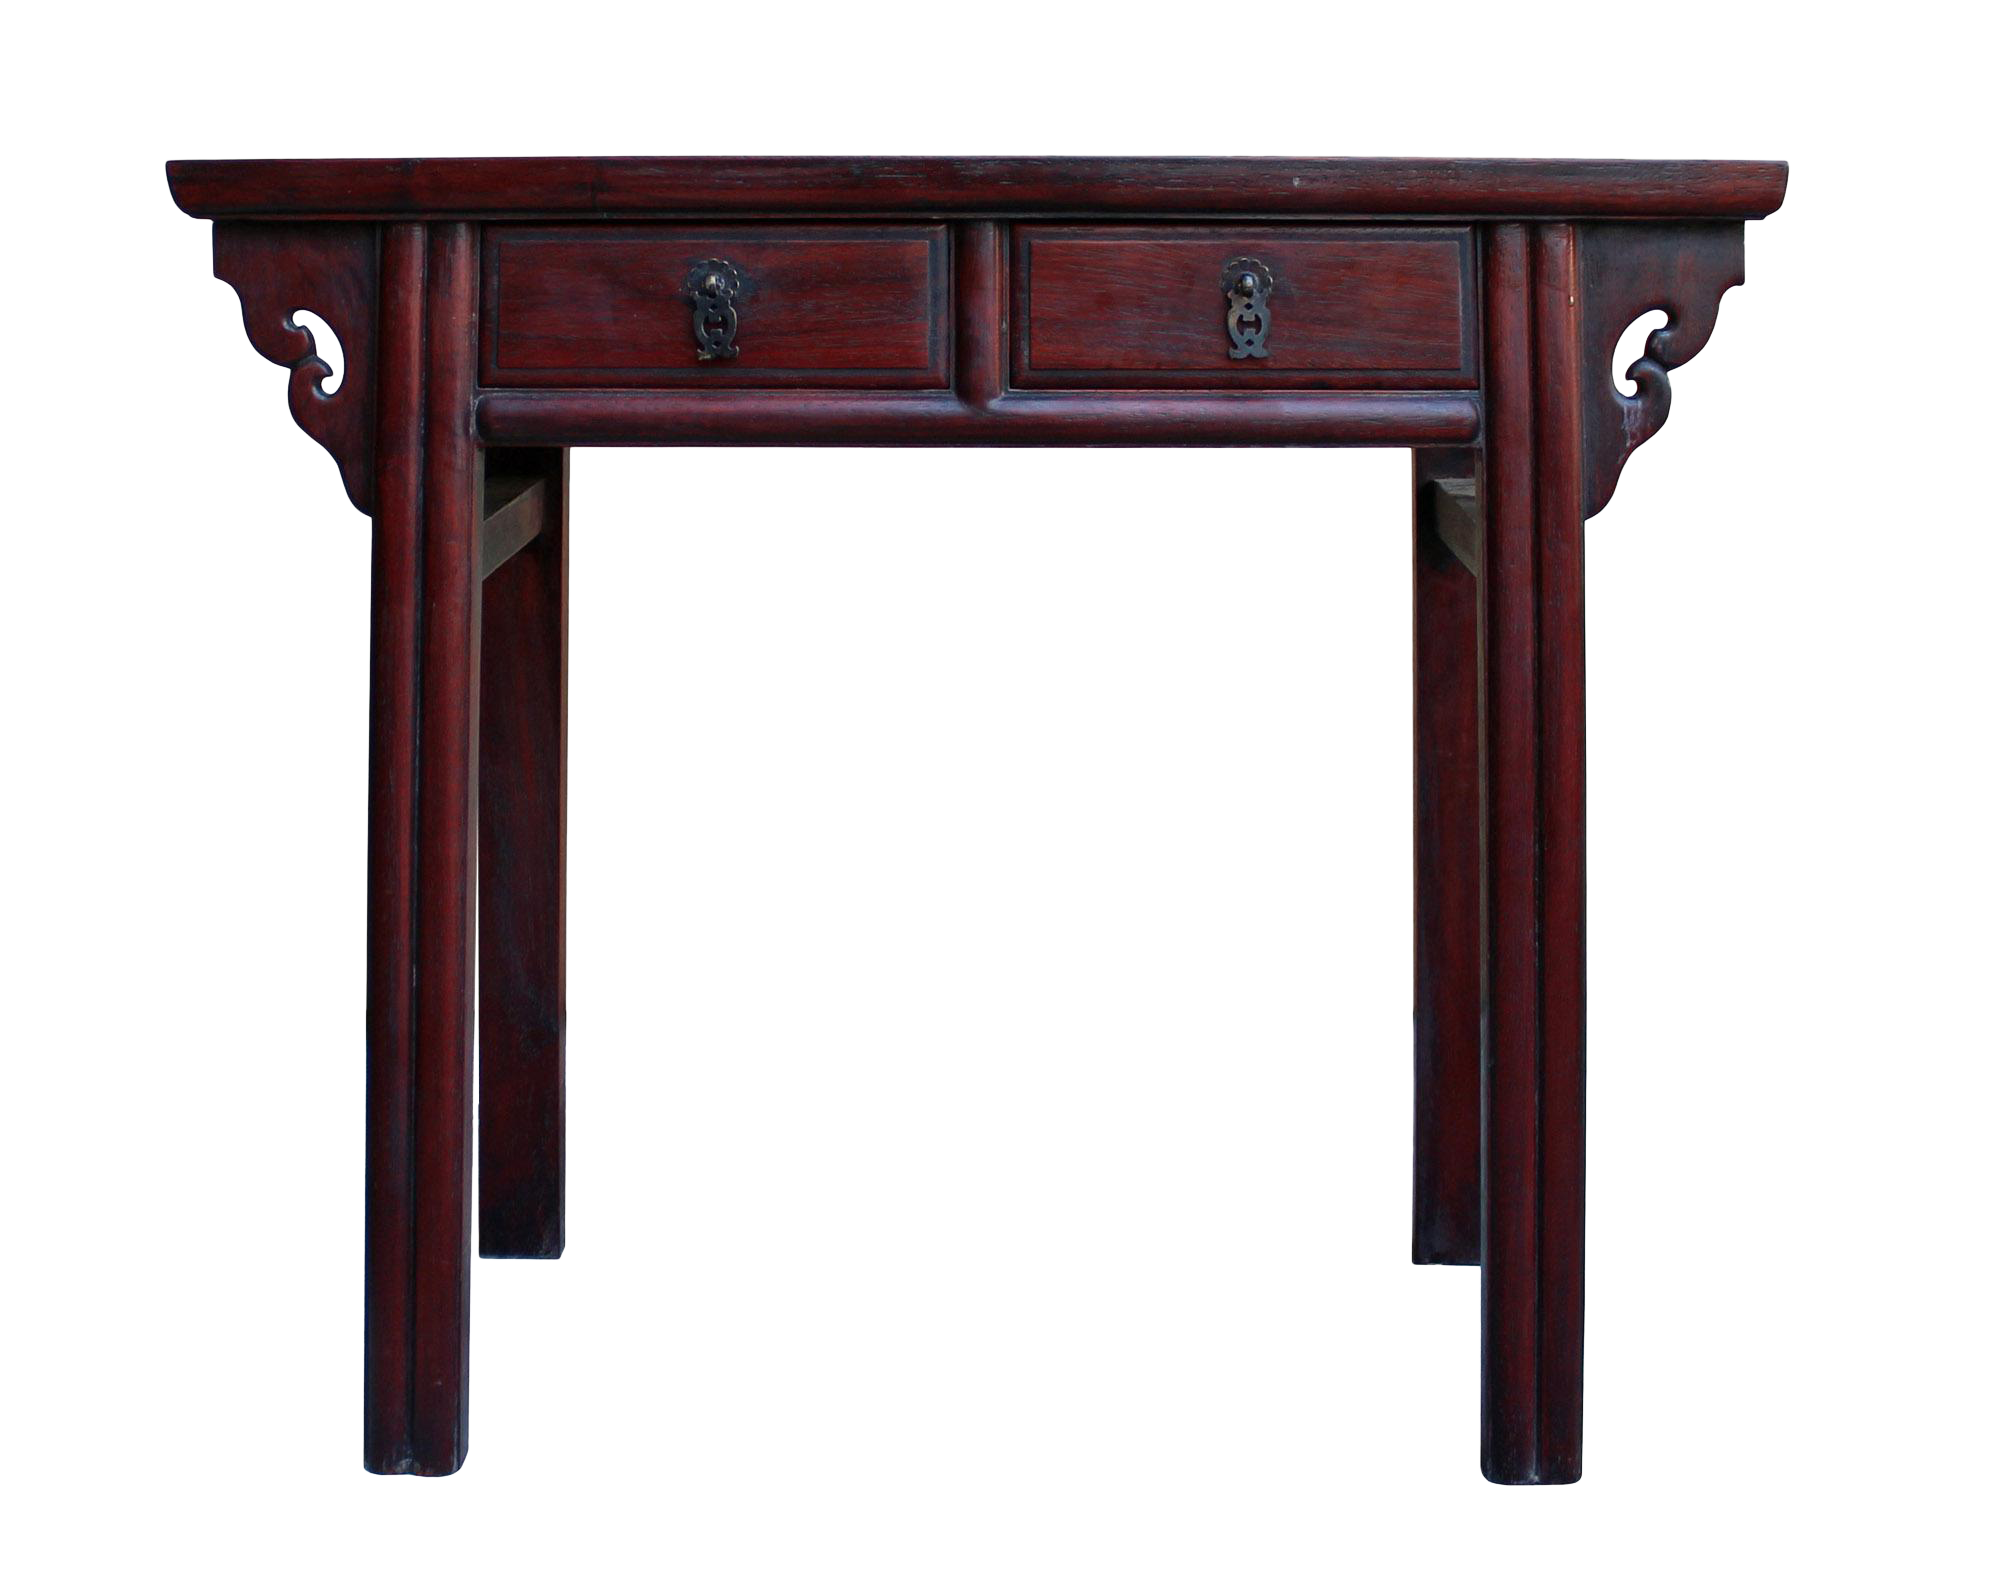 Chinese Low Small Reddish Brown Huali Rosewood Plant Stand  : chinese low small reddish brown huali rosewood plant stand side table 3179aspectfitampwidth640ampheight640 from www.chairish.com size 640 x 640 jpeg 24kB